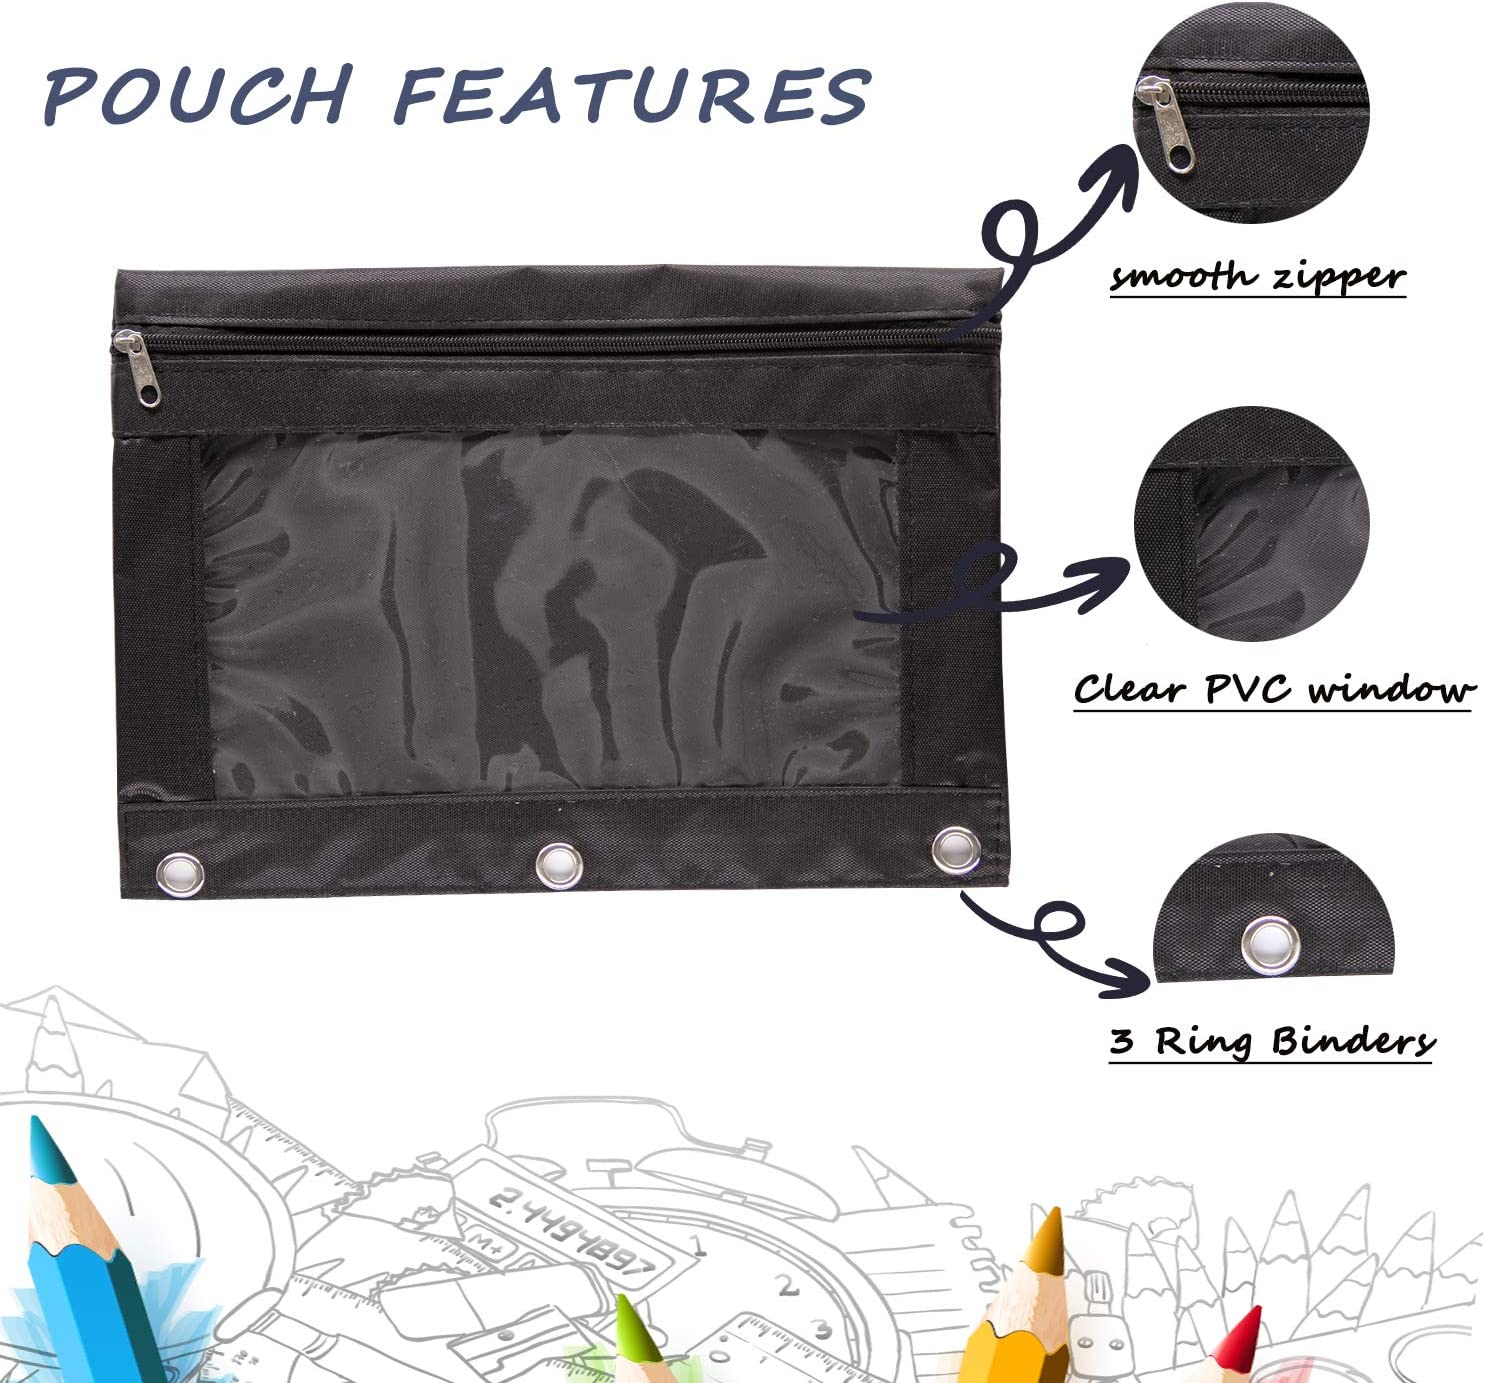 2 Packs Black 6 Pcs Plastic Binder Pen Pouch Makeup Brush Tools Receipts Storage Bag 3 Ring Clear Pencil Pouch with Zipper